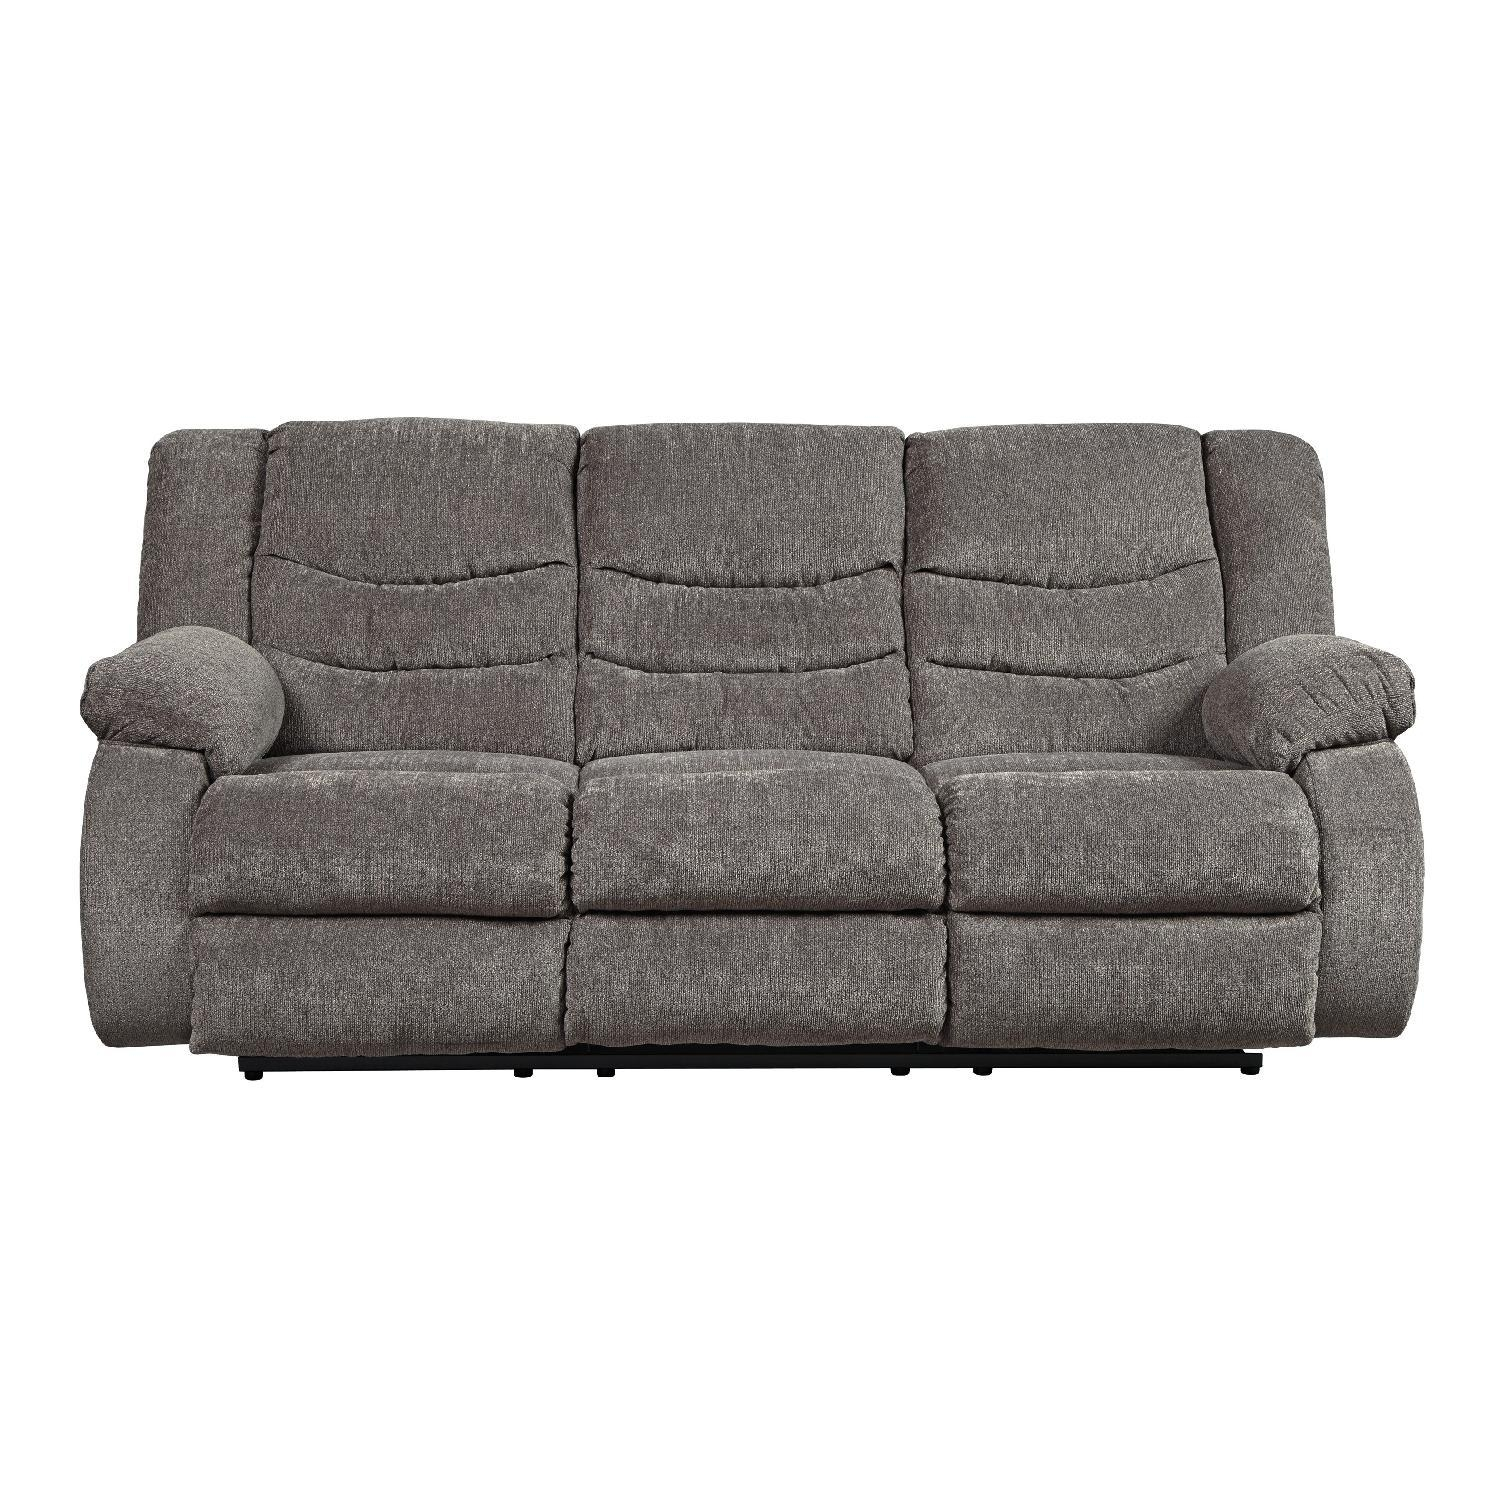 Ashley's Tulen Contemporary Reclining Sofa In Fabric – Aptdeco With Regard To Contemporary Fabric Sofas (Image 1 of 20)